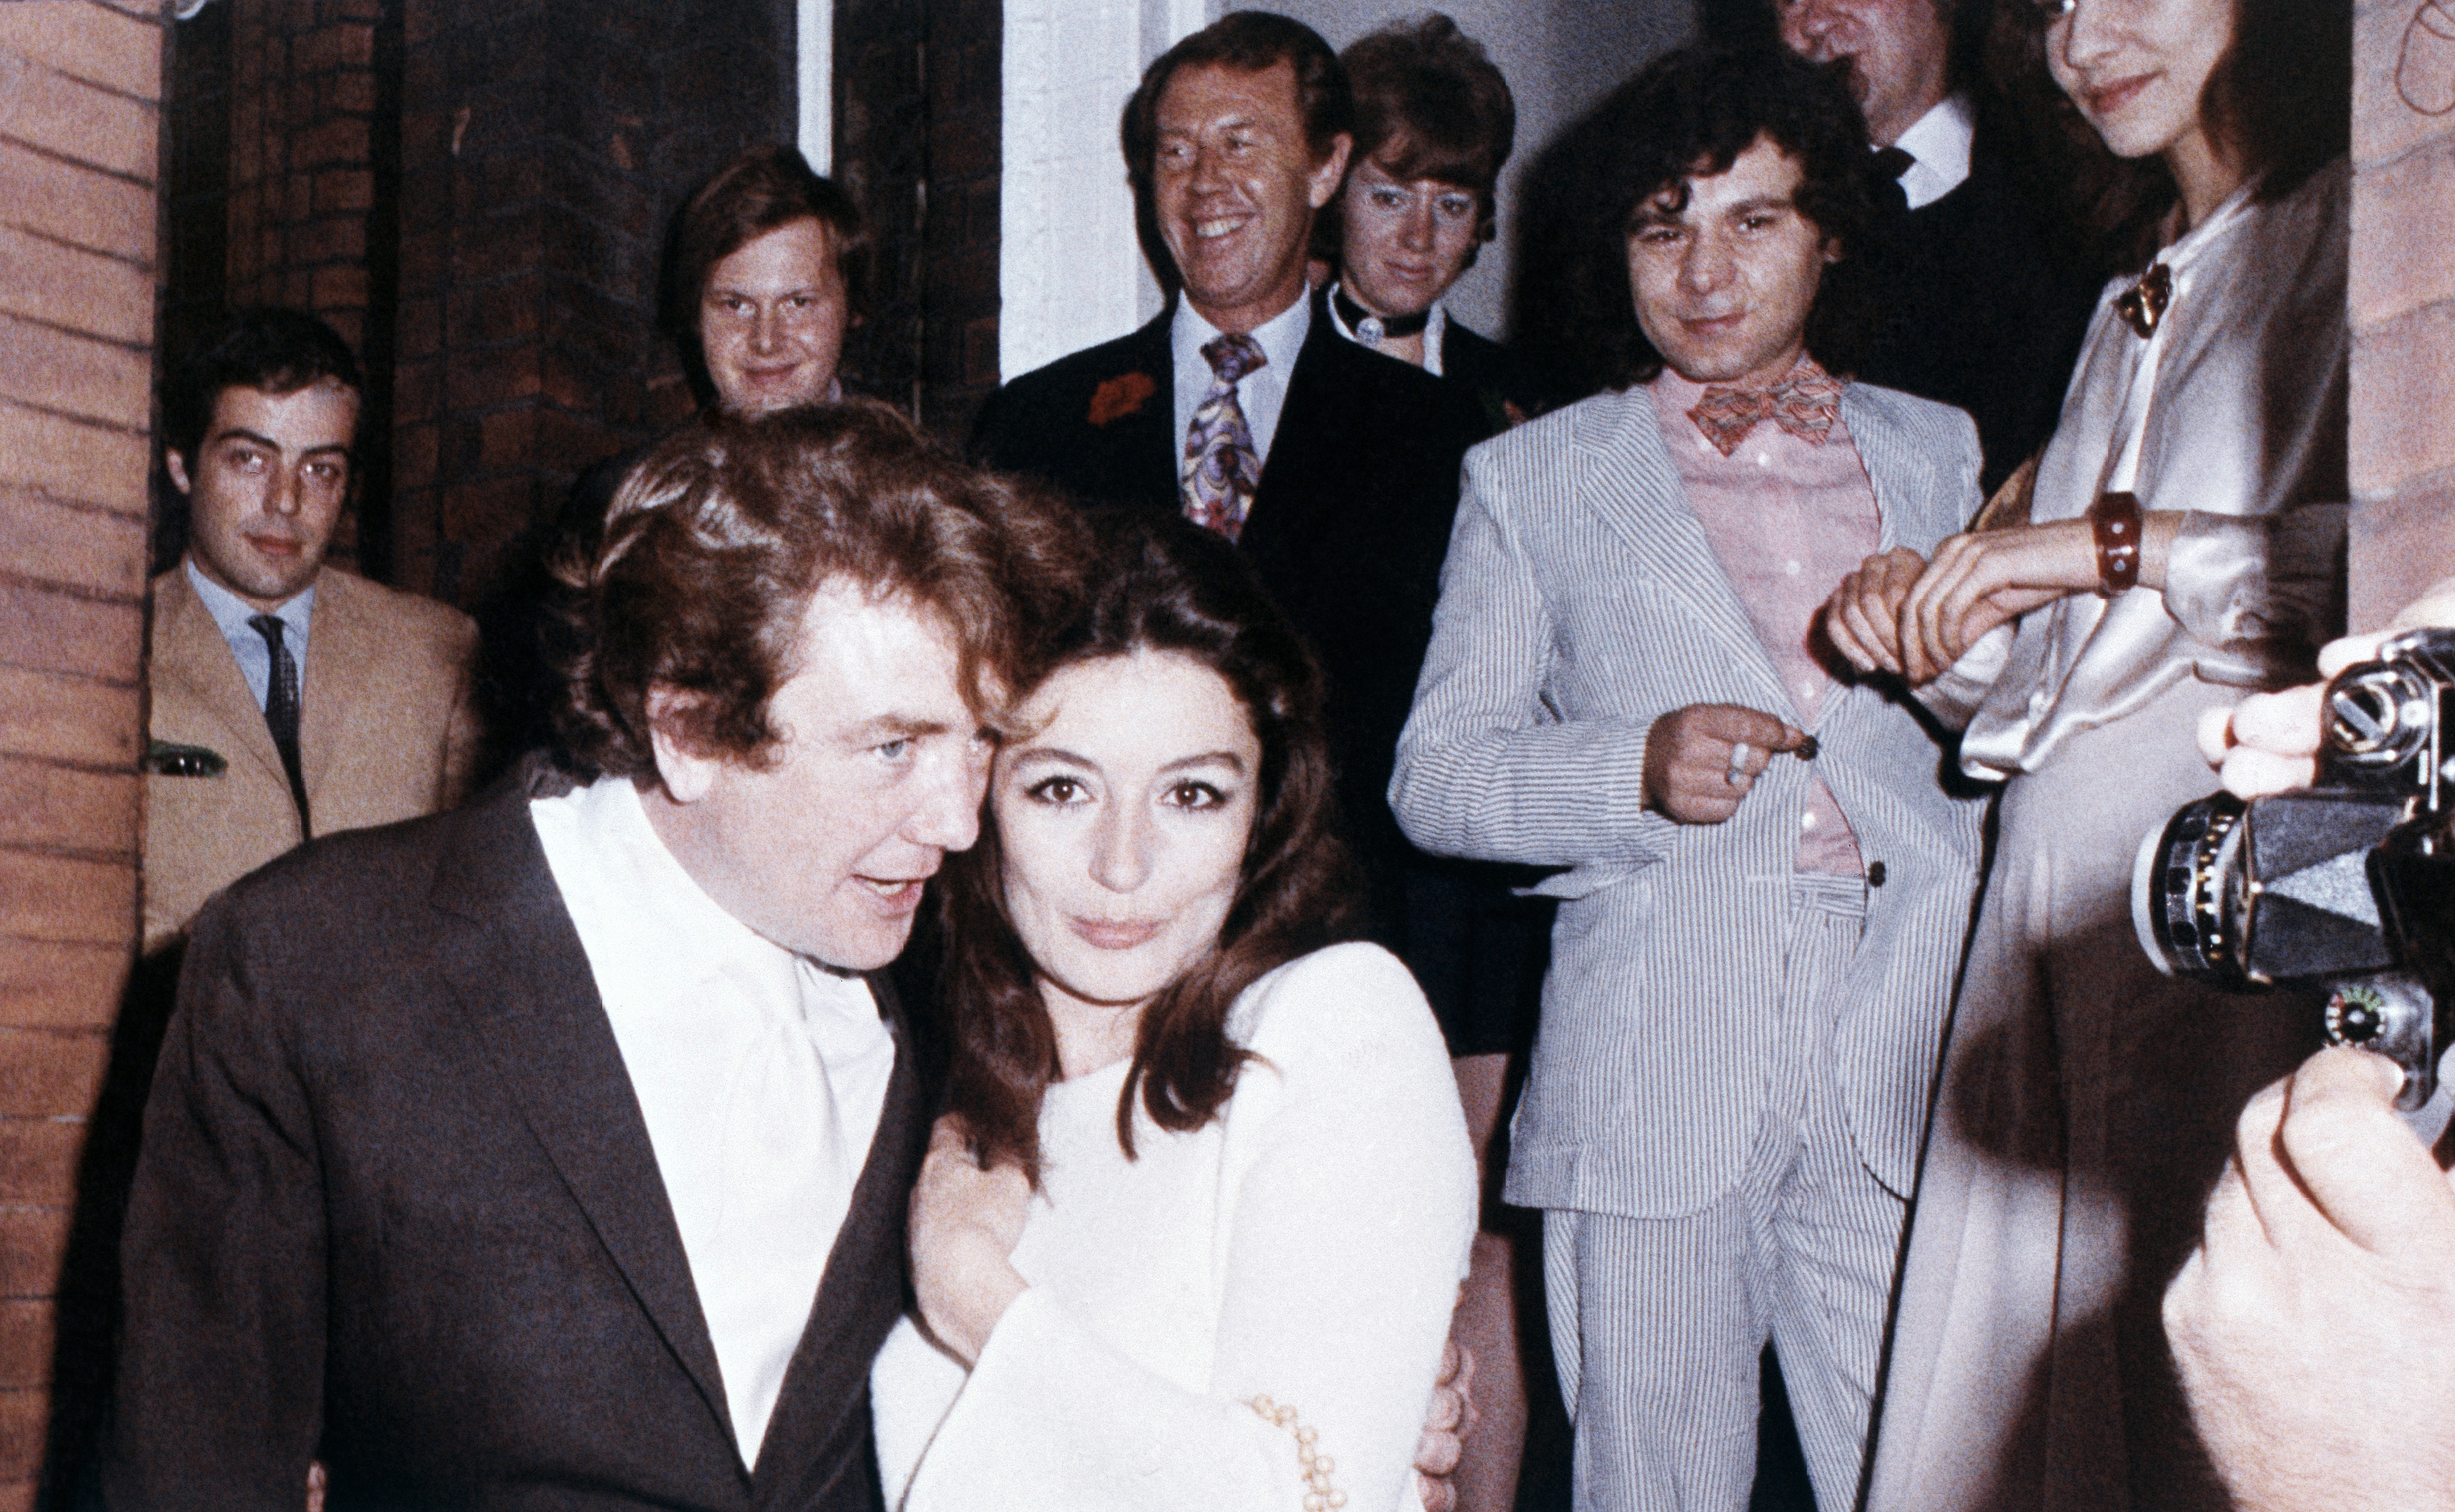 "FILE  - In this 1970 file photo, British actor Albert Finney embraces his bride, French Actress Anouk Aimee, after their registry office wedding in London. Finney, the Academy Award-nominated star of films from ""Tom Jones"" to ""Skyfall"" has died at the age of 82 it was reported on Friday, Feb. 8, 2019. (AP Photo/Eddie Worth, File)"